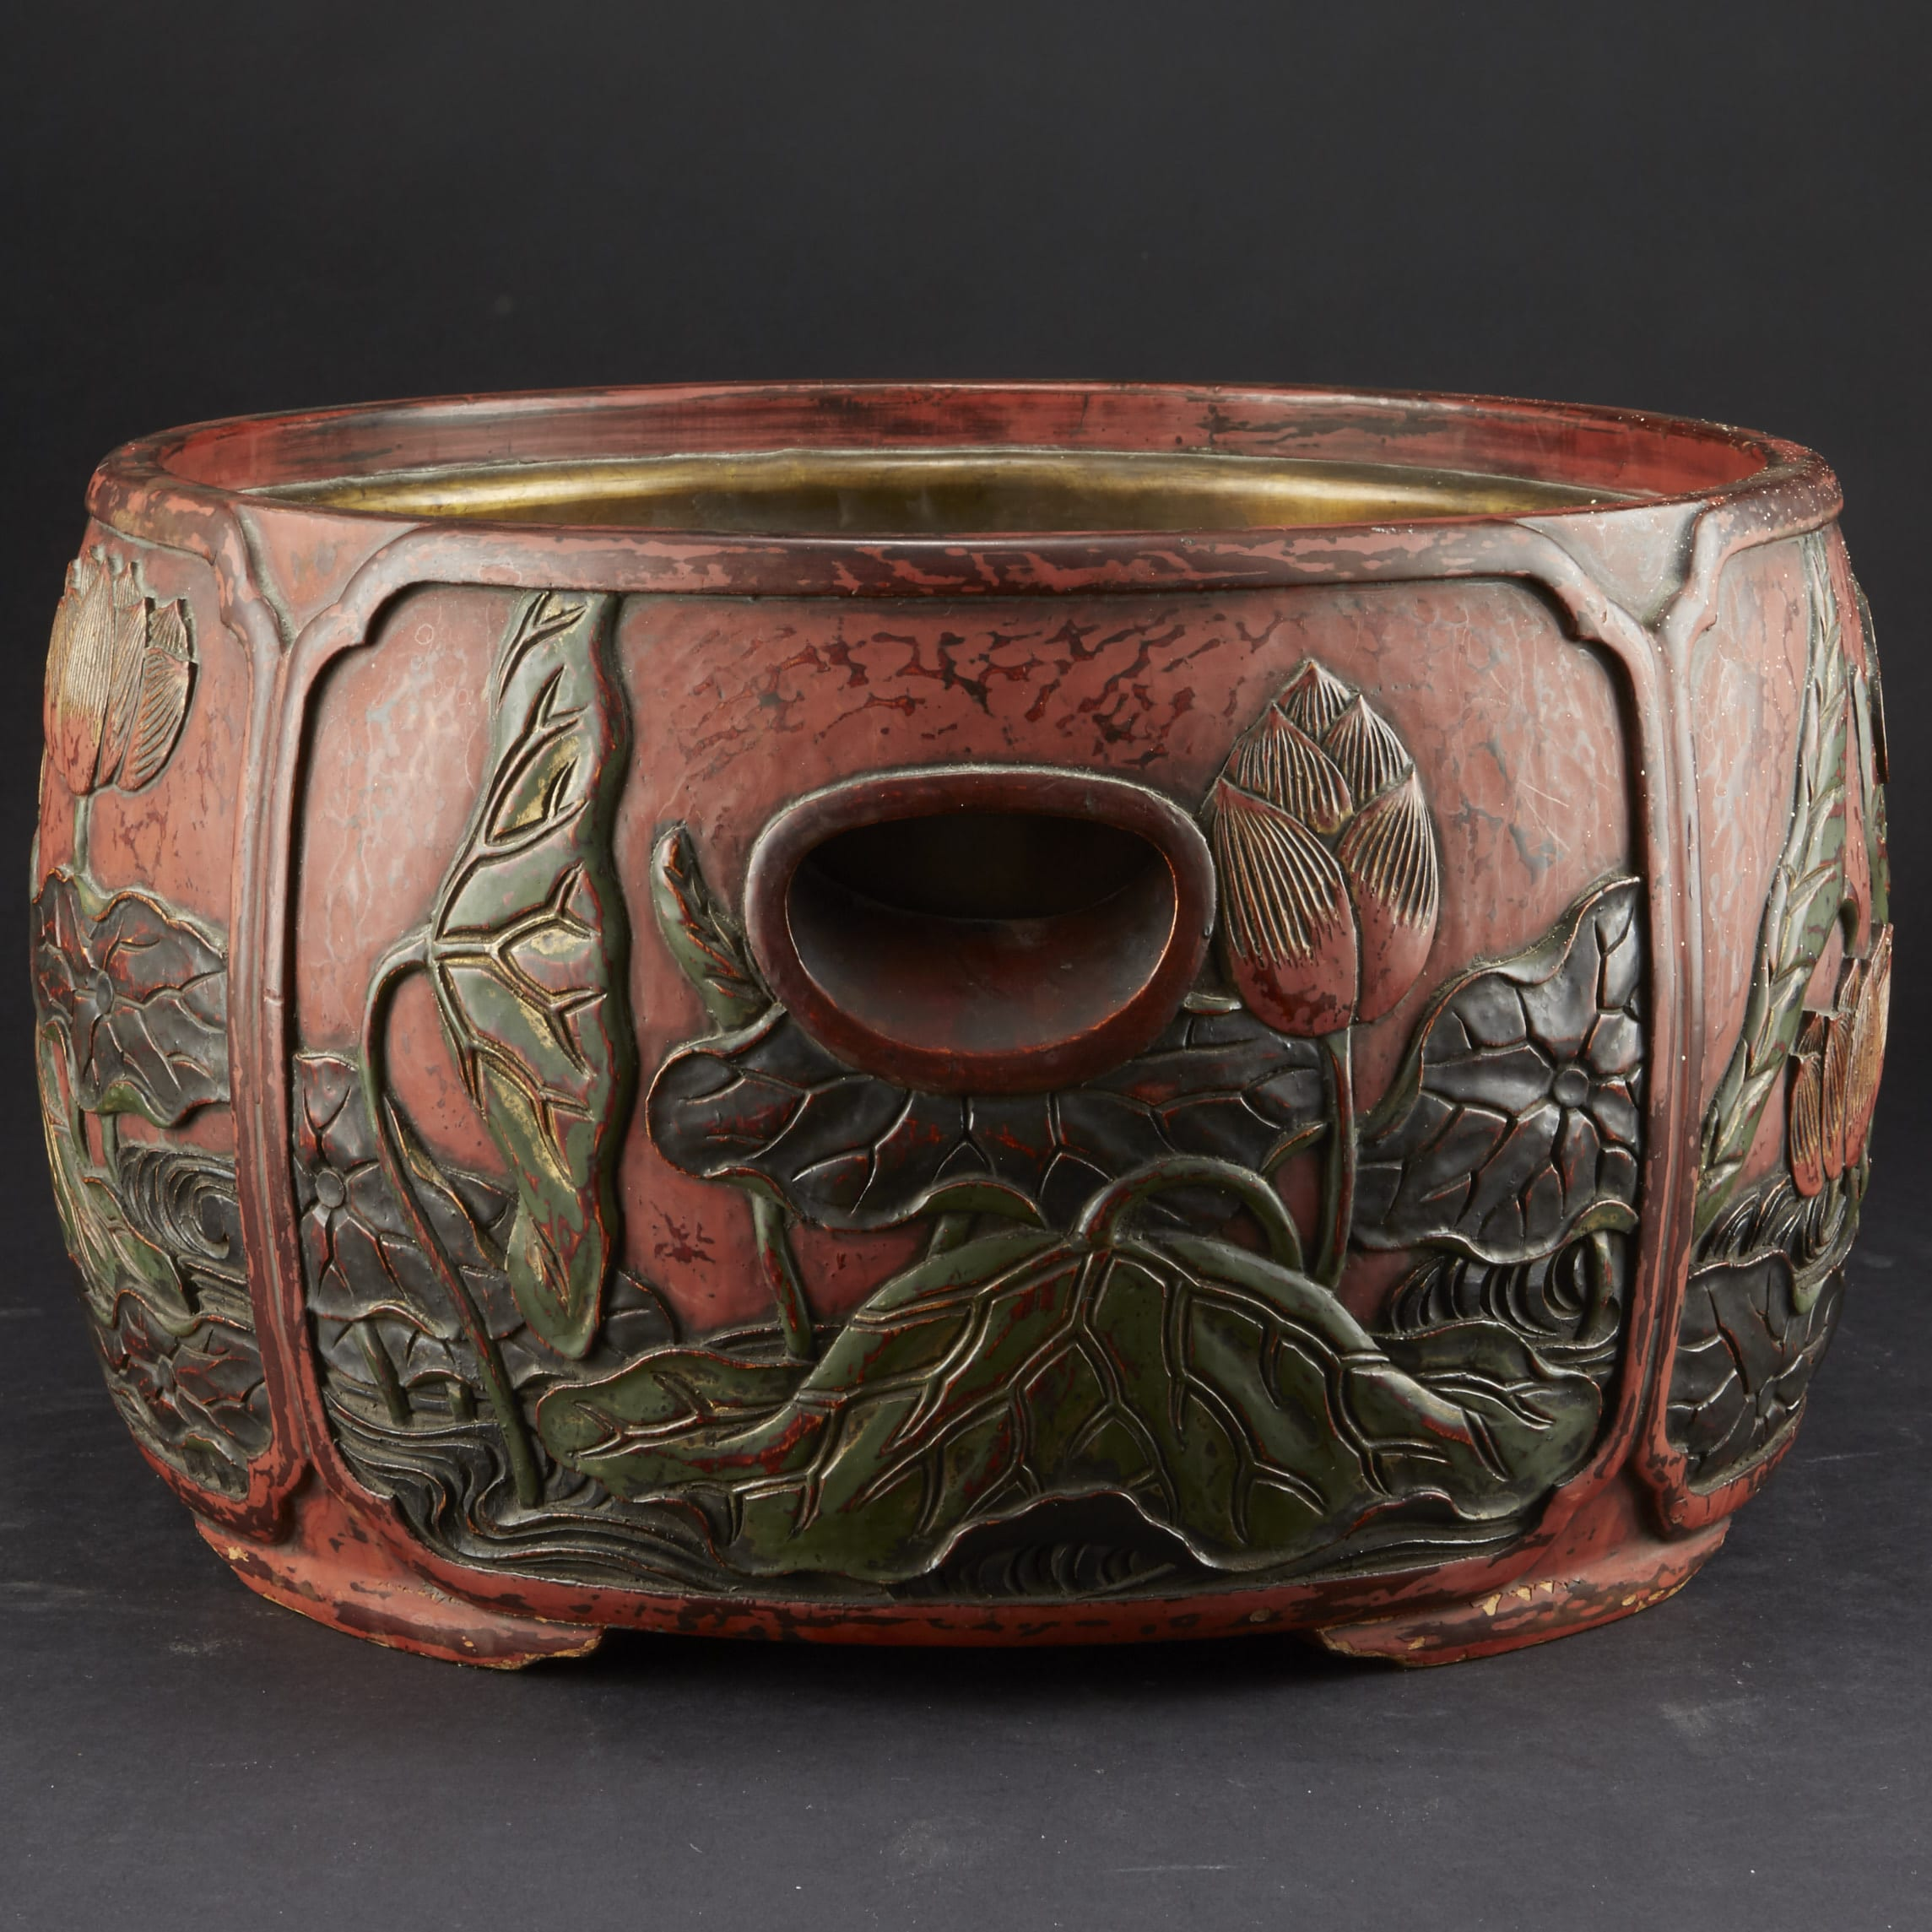 Lot 083: Carved and Lacquered Japanese Hibachi along with other Japanese Lacquer Items